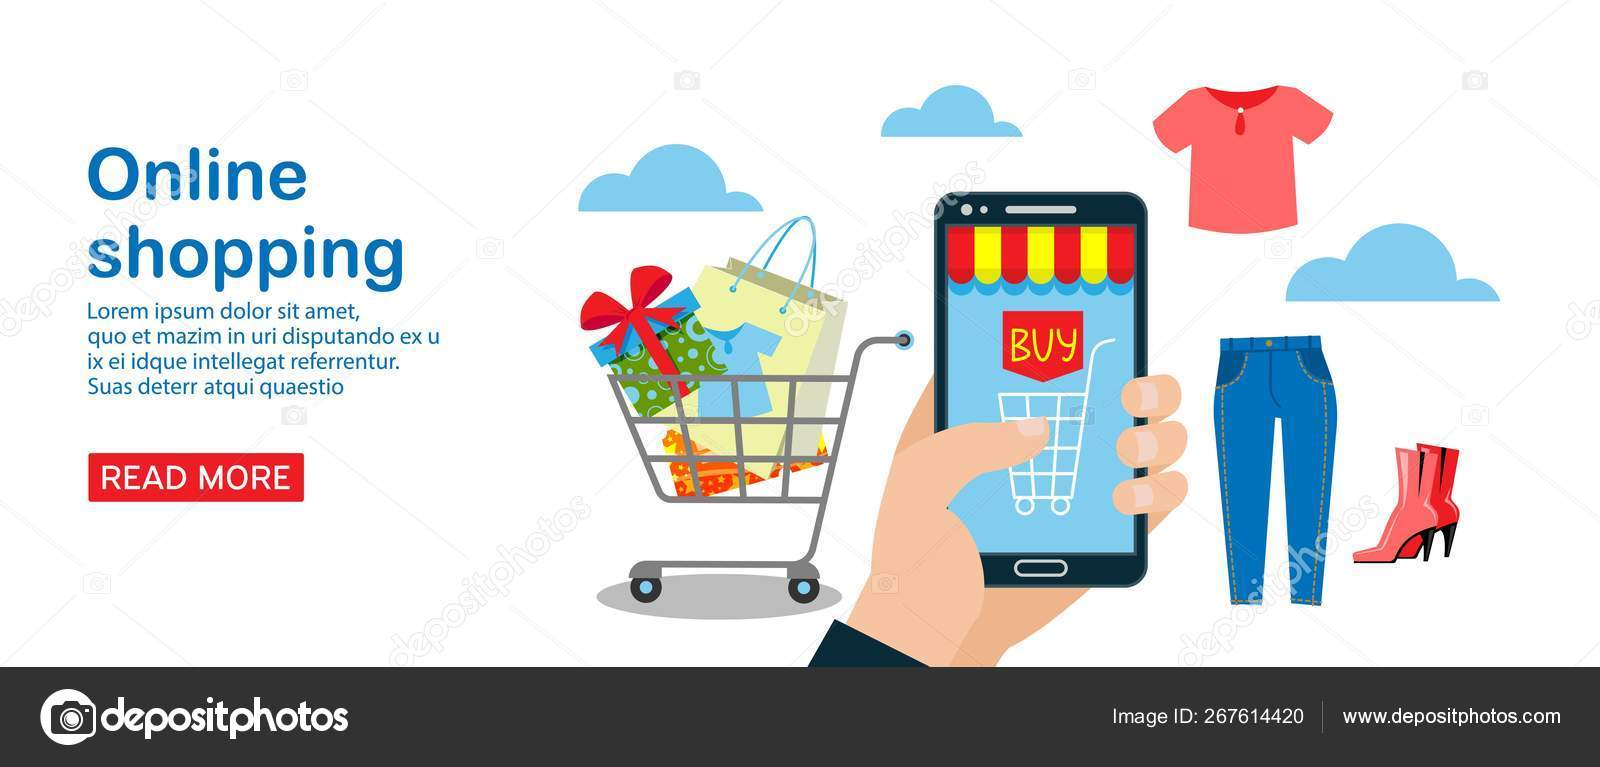 Online Shopping Banner Vector Illustration Mobile Page Design Template For Buying Clothing Such As T Shirt Jeans Shoes Online Ordering E Commerce Cart With Purchases Present Stock Vector C Vectorshow 267614420